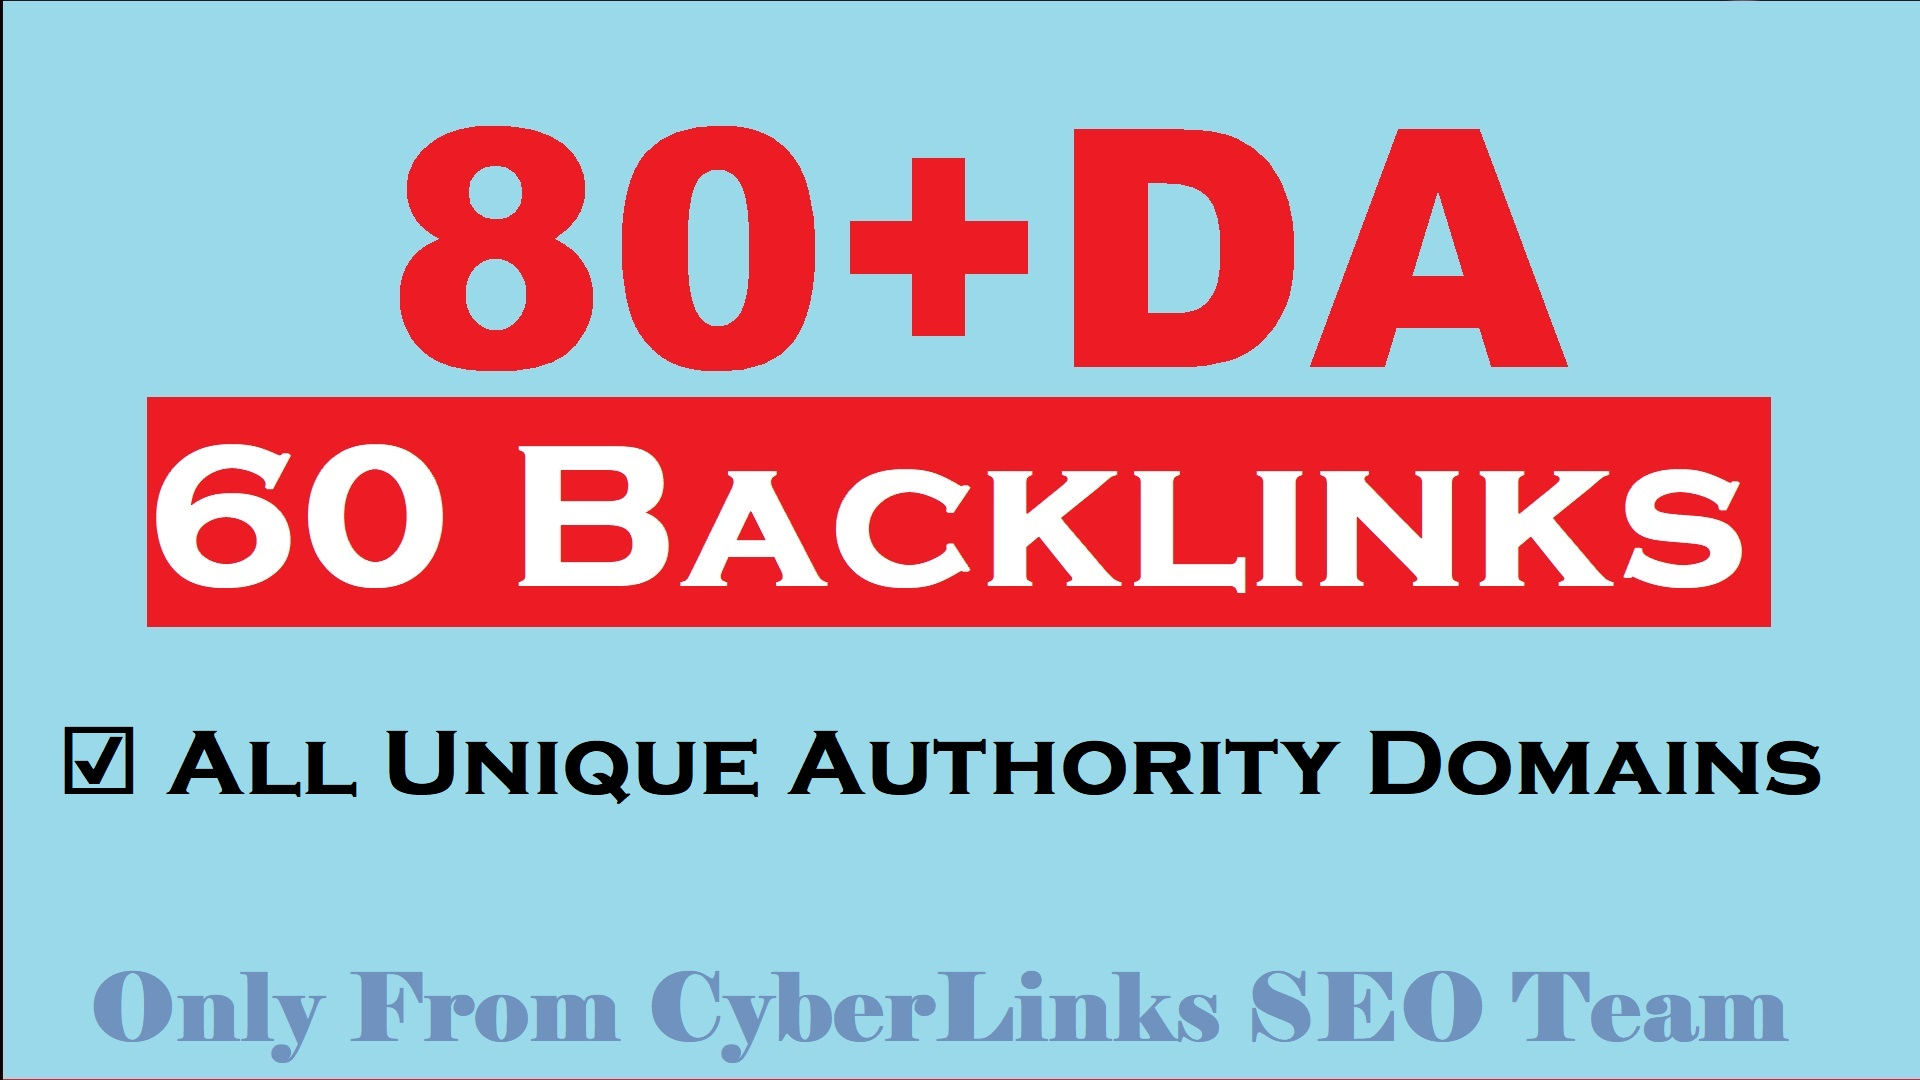 80+DA Links Juicy 60 PR9 Quality SEO Authority Backlinks for Promote Your 1st page Ranking